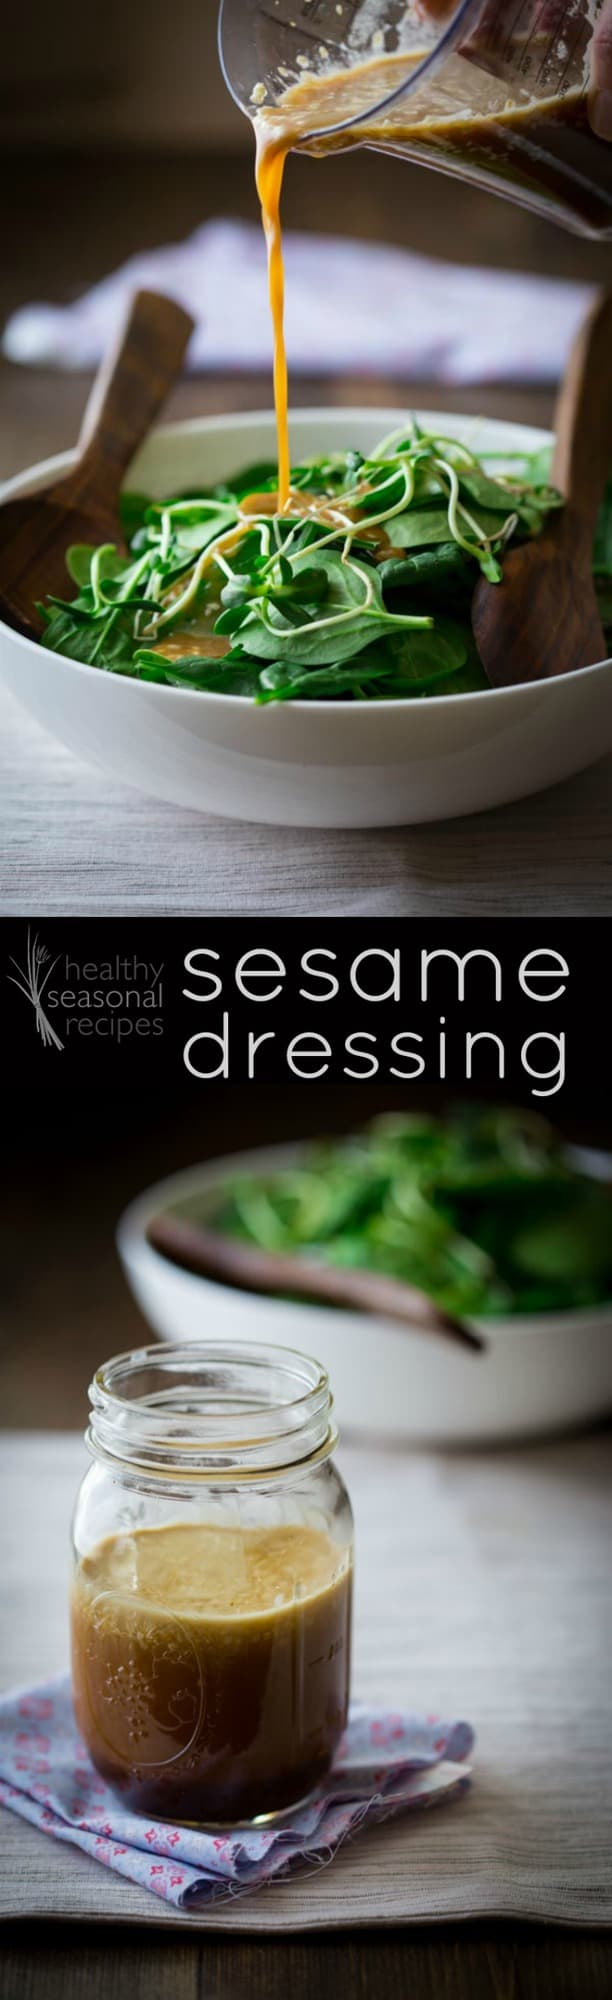 A 5-minute Asian Sesame Dressing made with orange juice to extend its shelf life and keep the amount of oil below 50% of the volume. #sesame #dressing #saladdressing #asian #salads #vinaigrette #healthy #easy #vegan #vegetarian #glutenfree